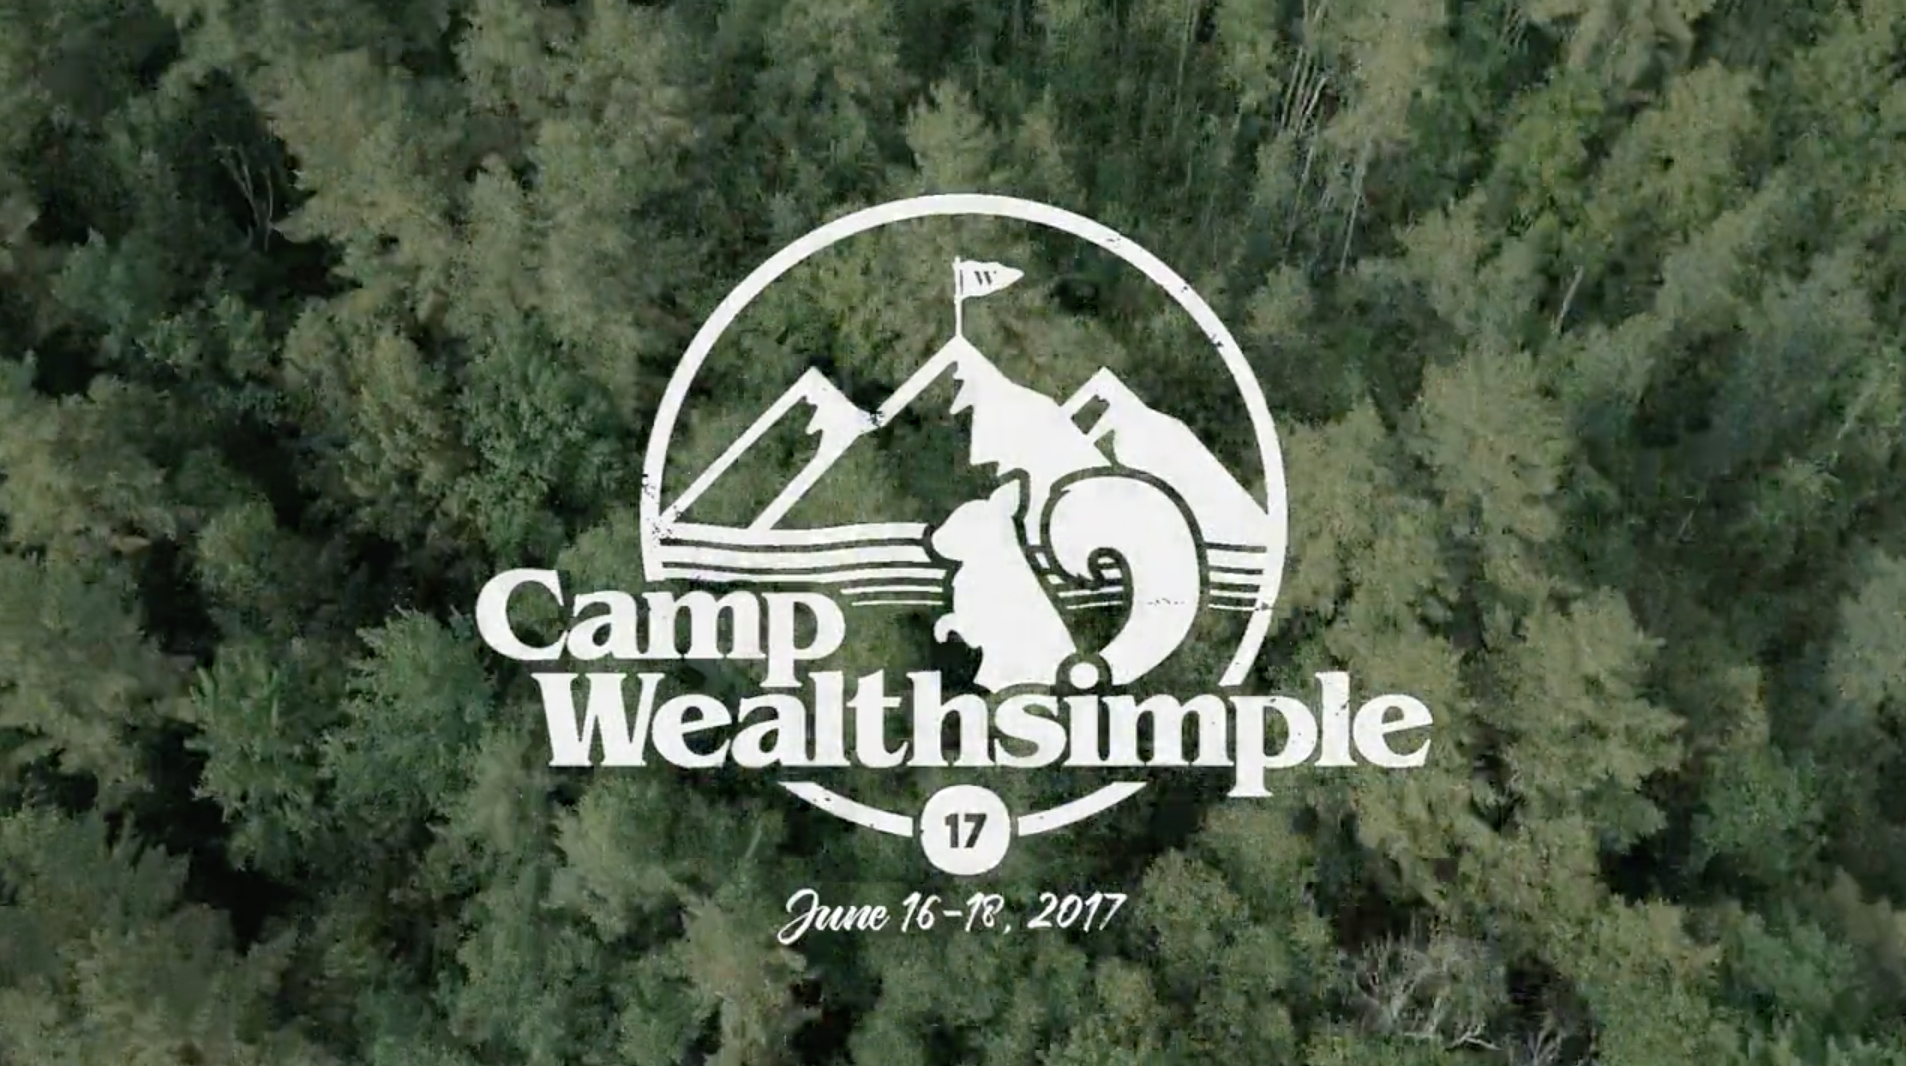 Camp Wealthsimple